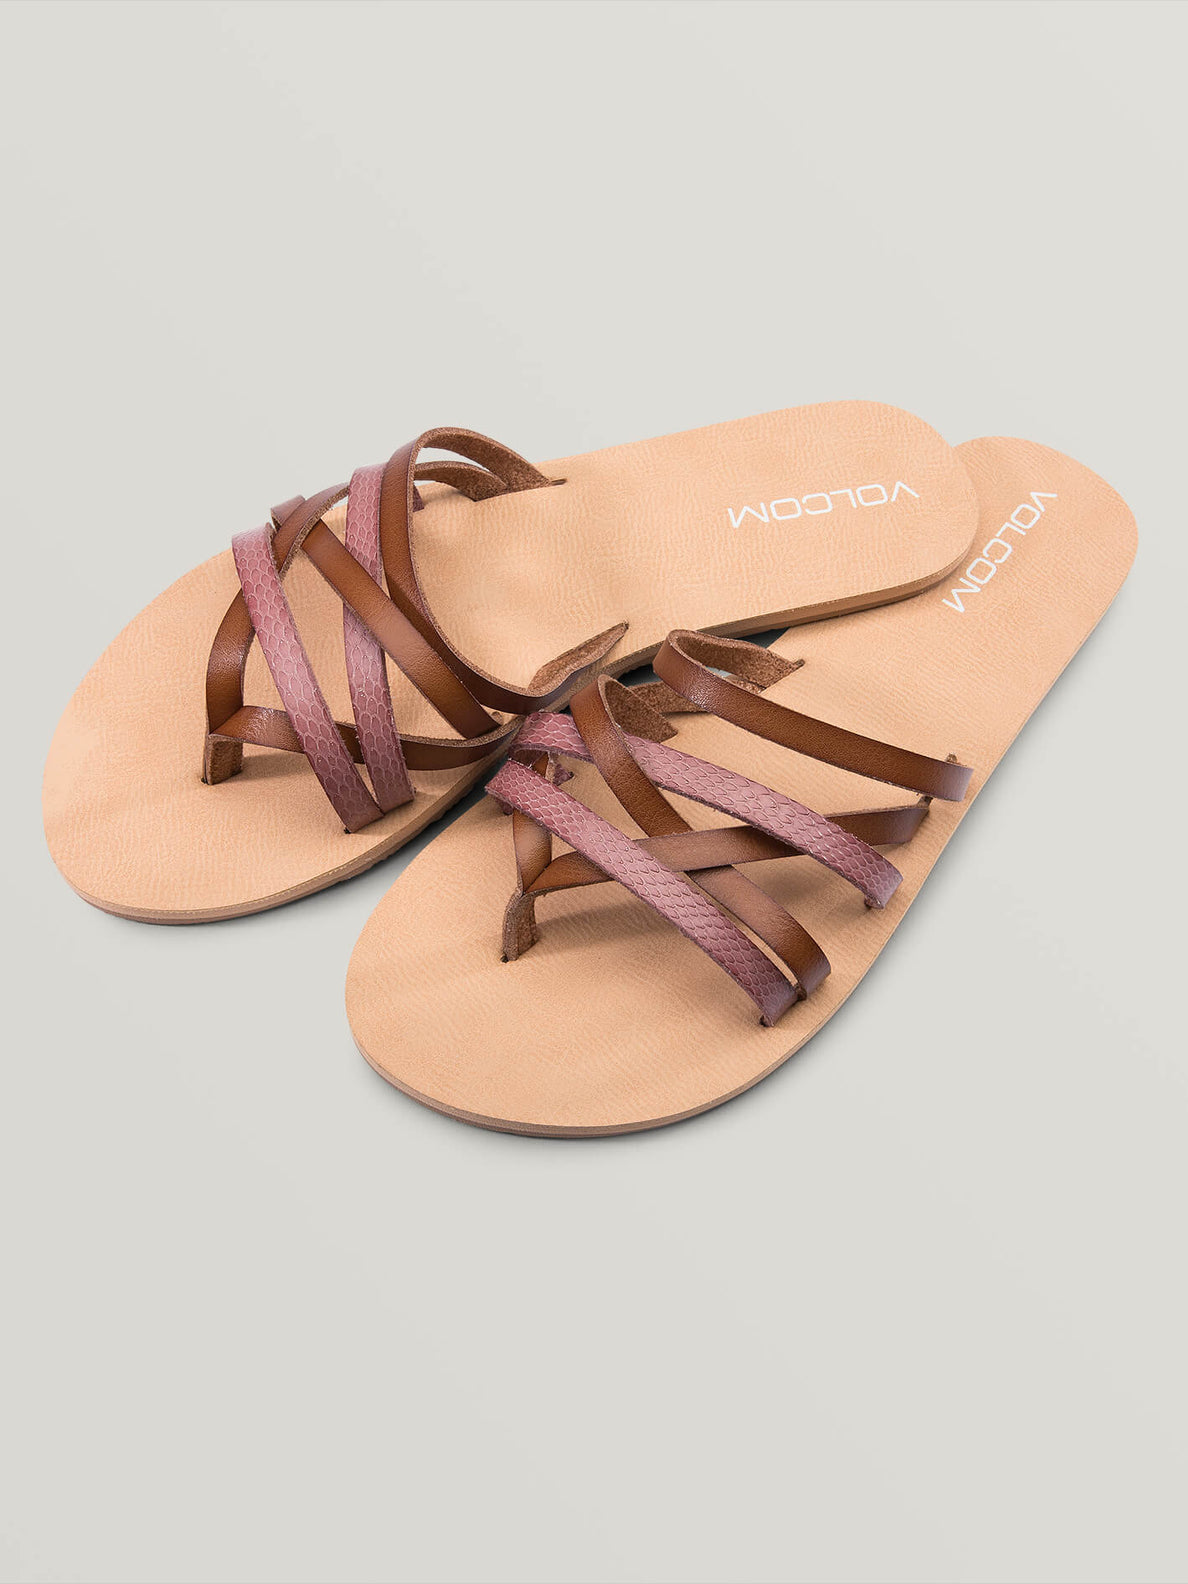 Legacy Sandals In Light Purple, Front View